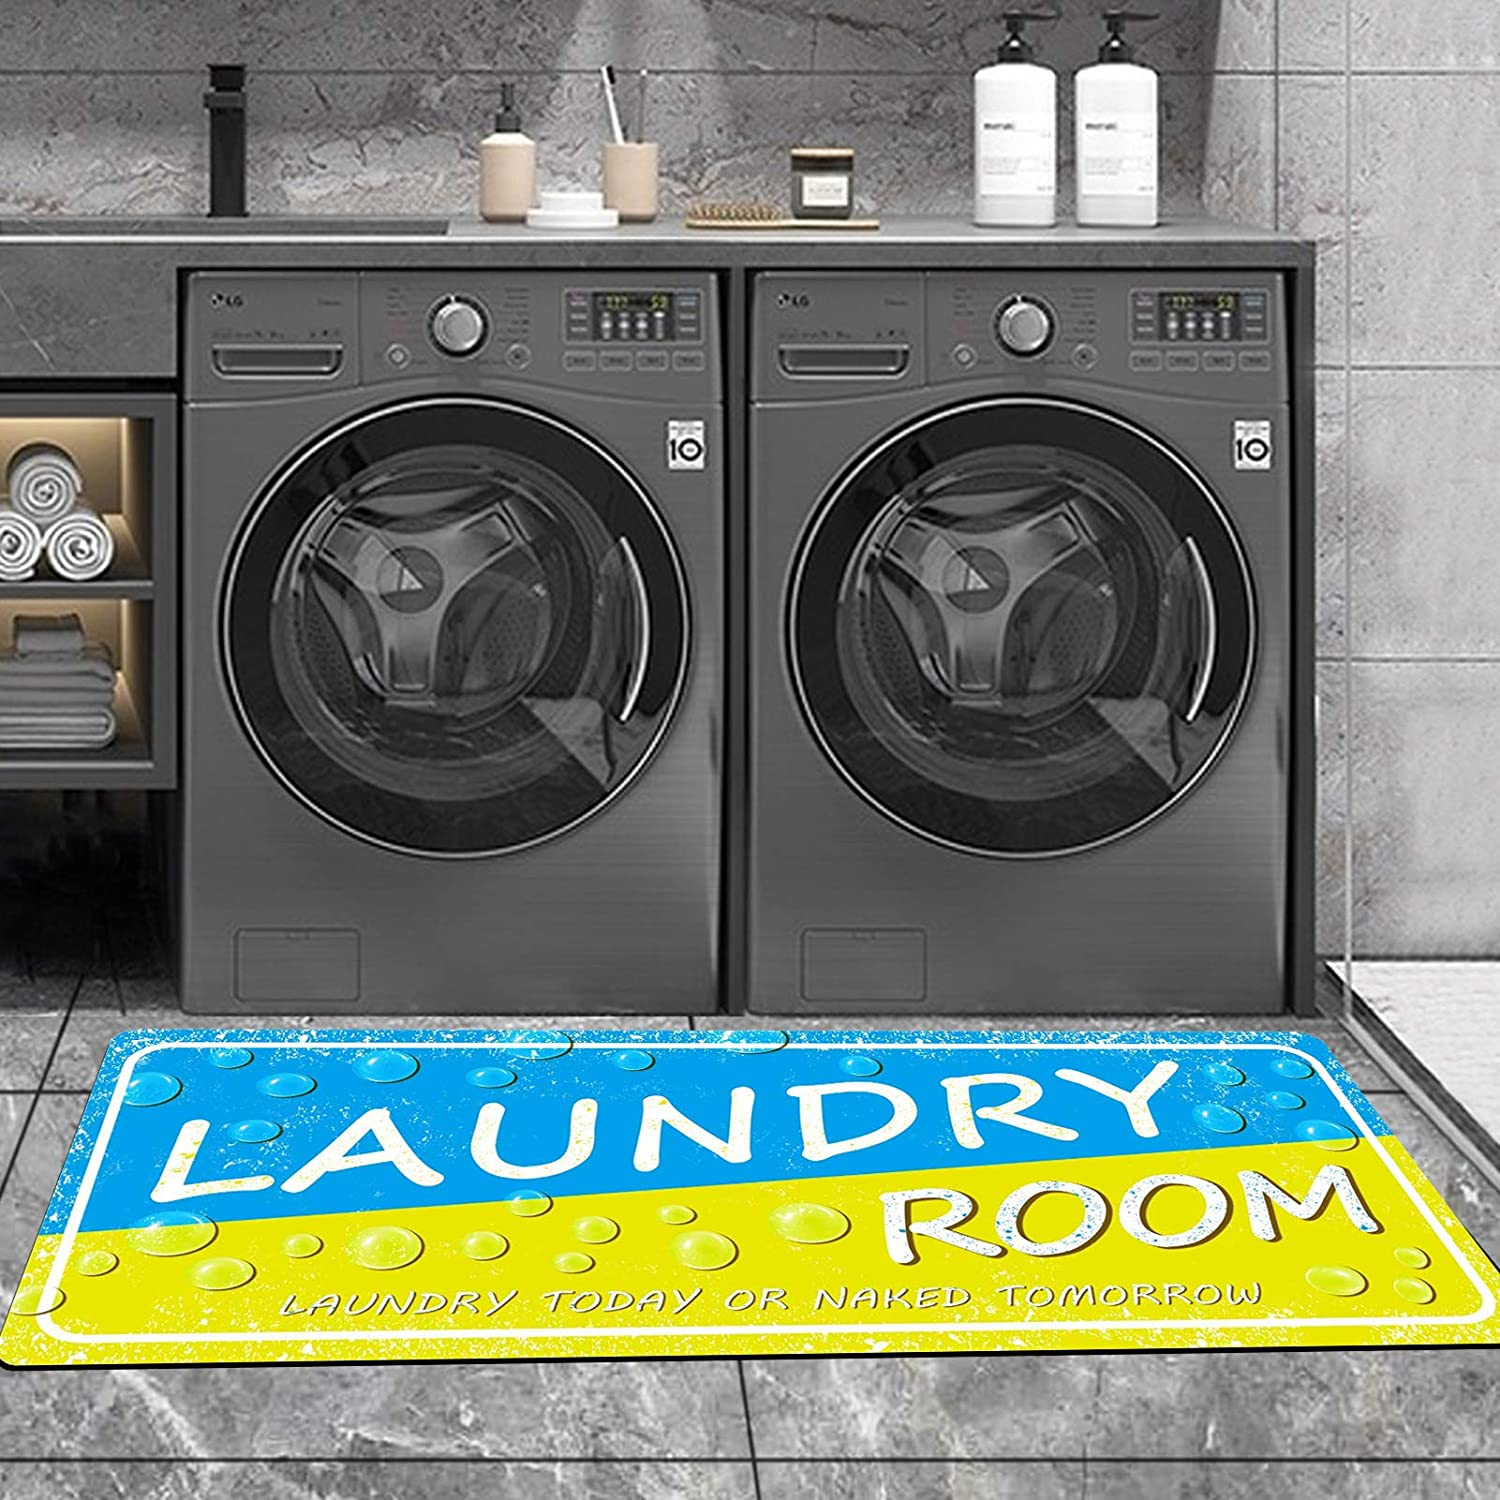 Comfort Mat Outlet sale feature Laundry Room Rug Tampa Mall Carpet Runners